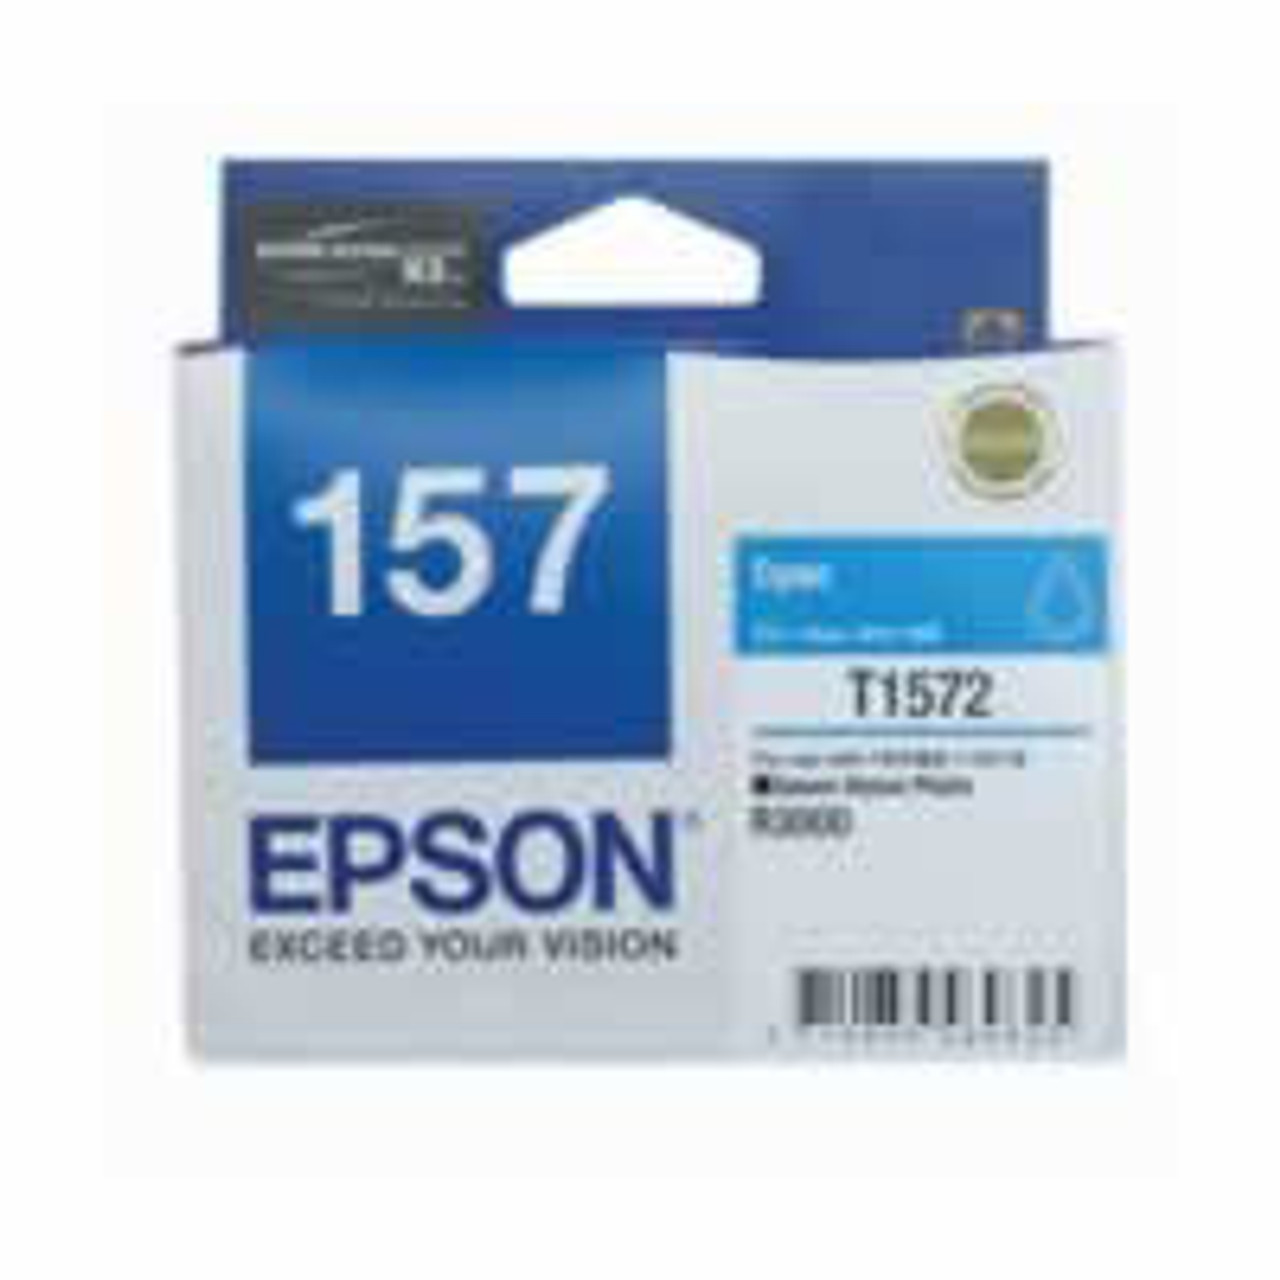 Image for Epson 157 Cyan Ink Cartridge CX Computer Superstore